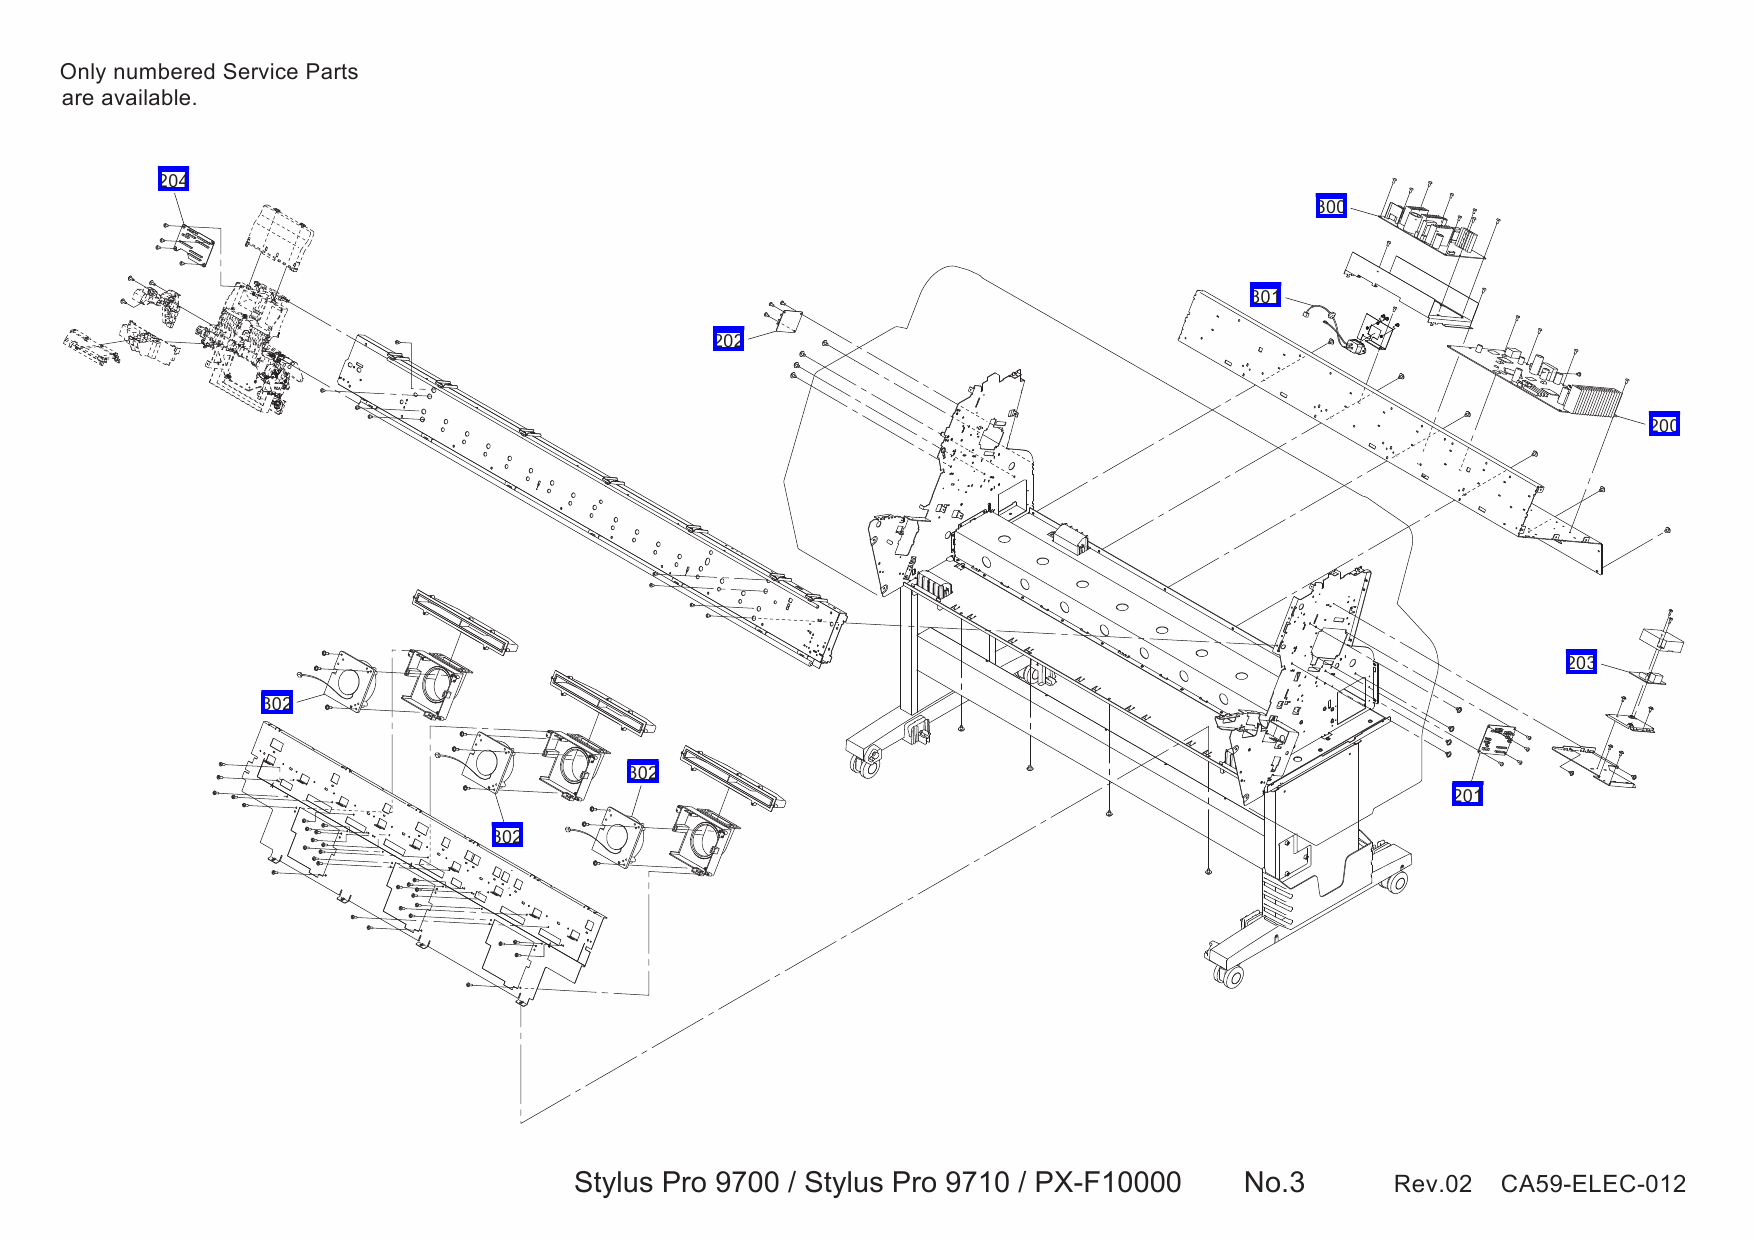 EPSON StylusPro 9700 9710 Parts Manual